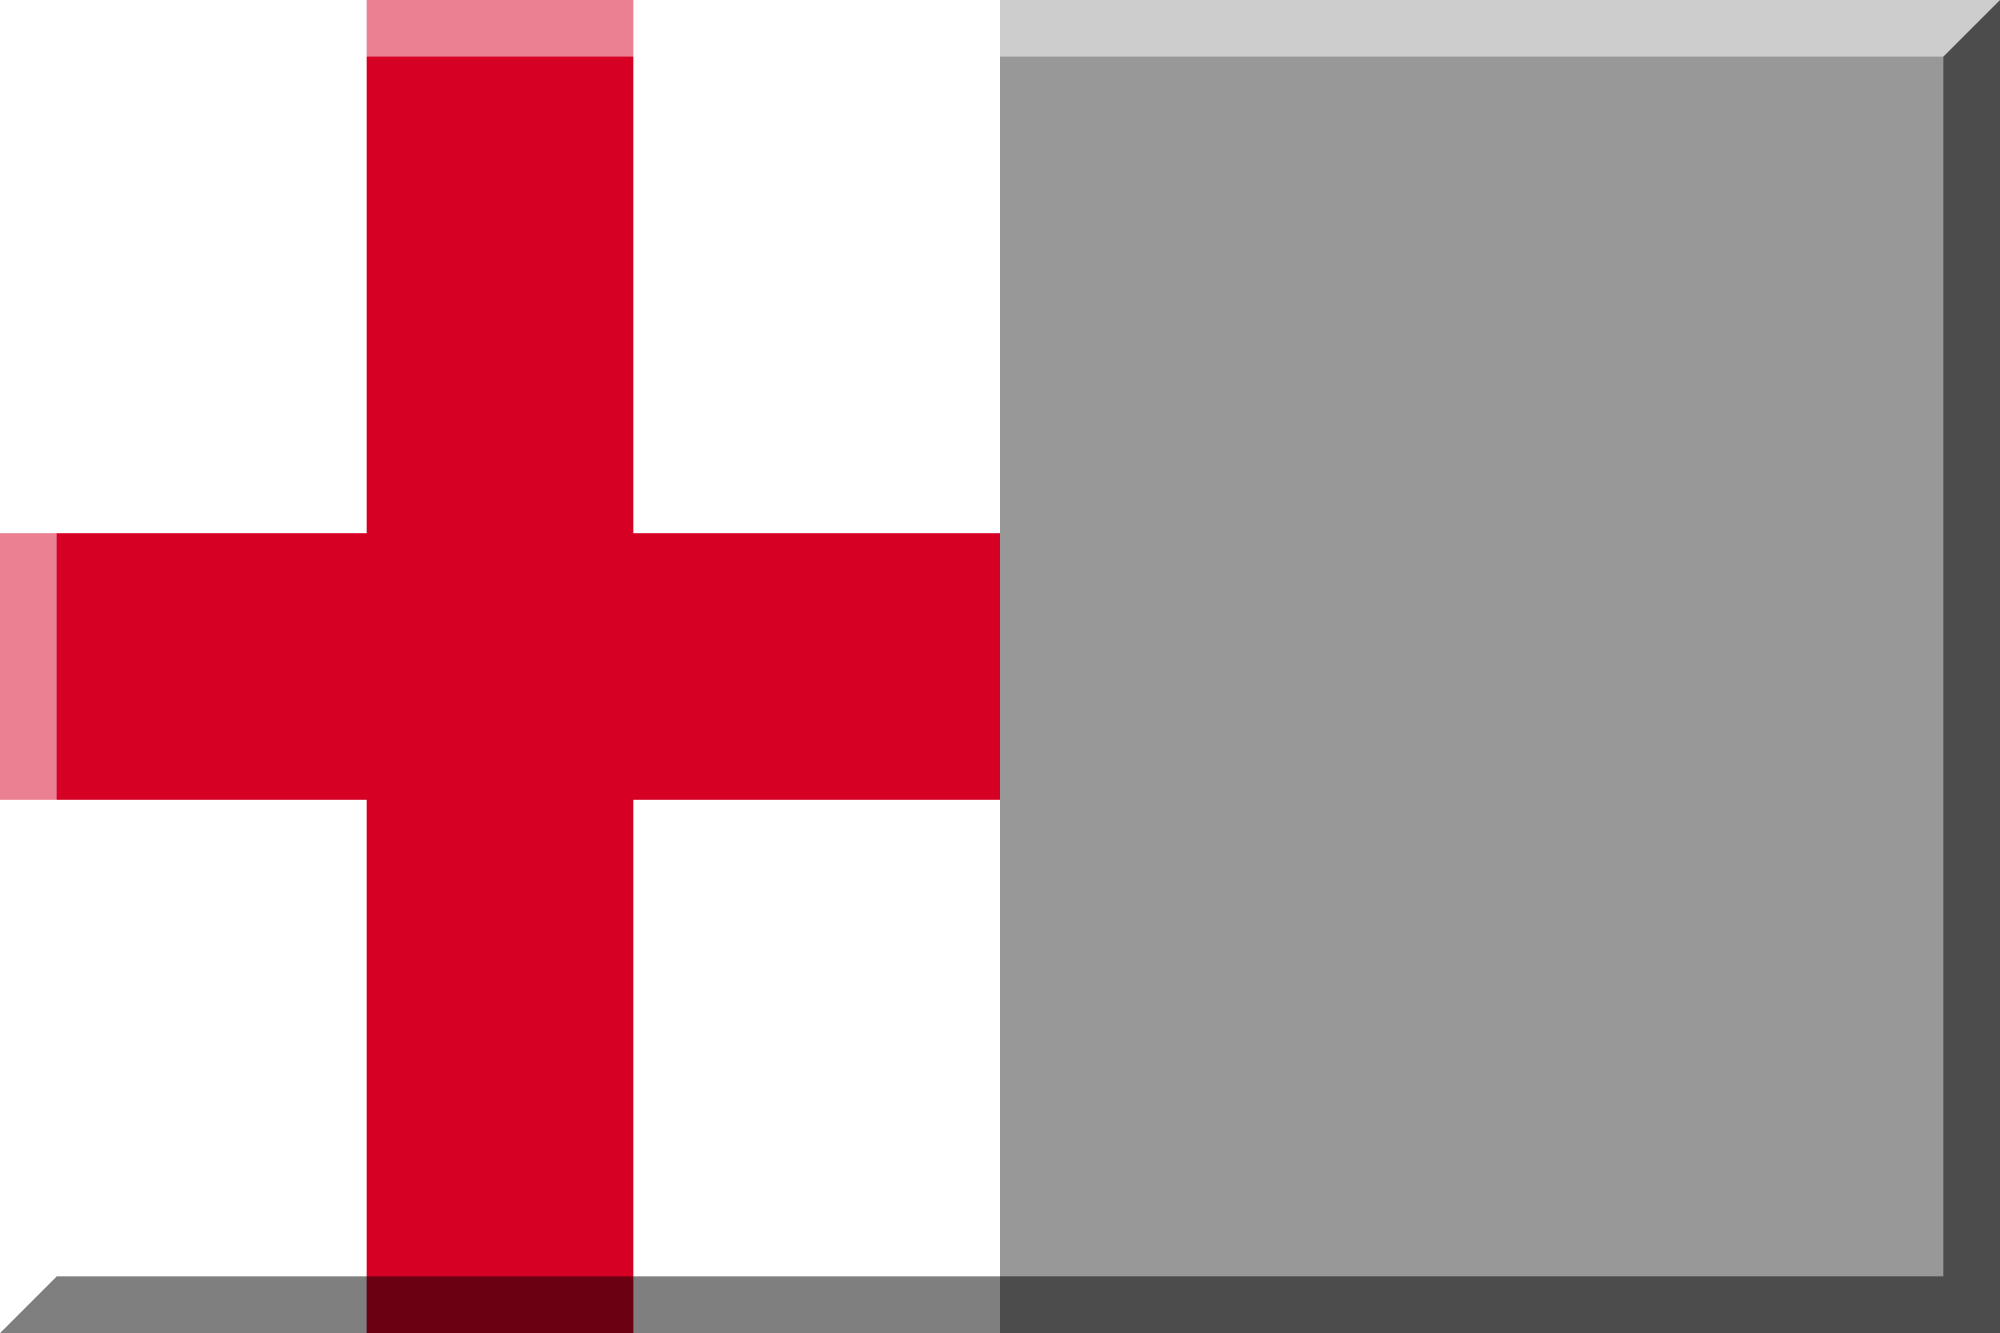 2000x1333 File600px White Grey Hex 989898 With Red Cross Hex D60025.svg